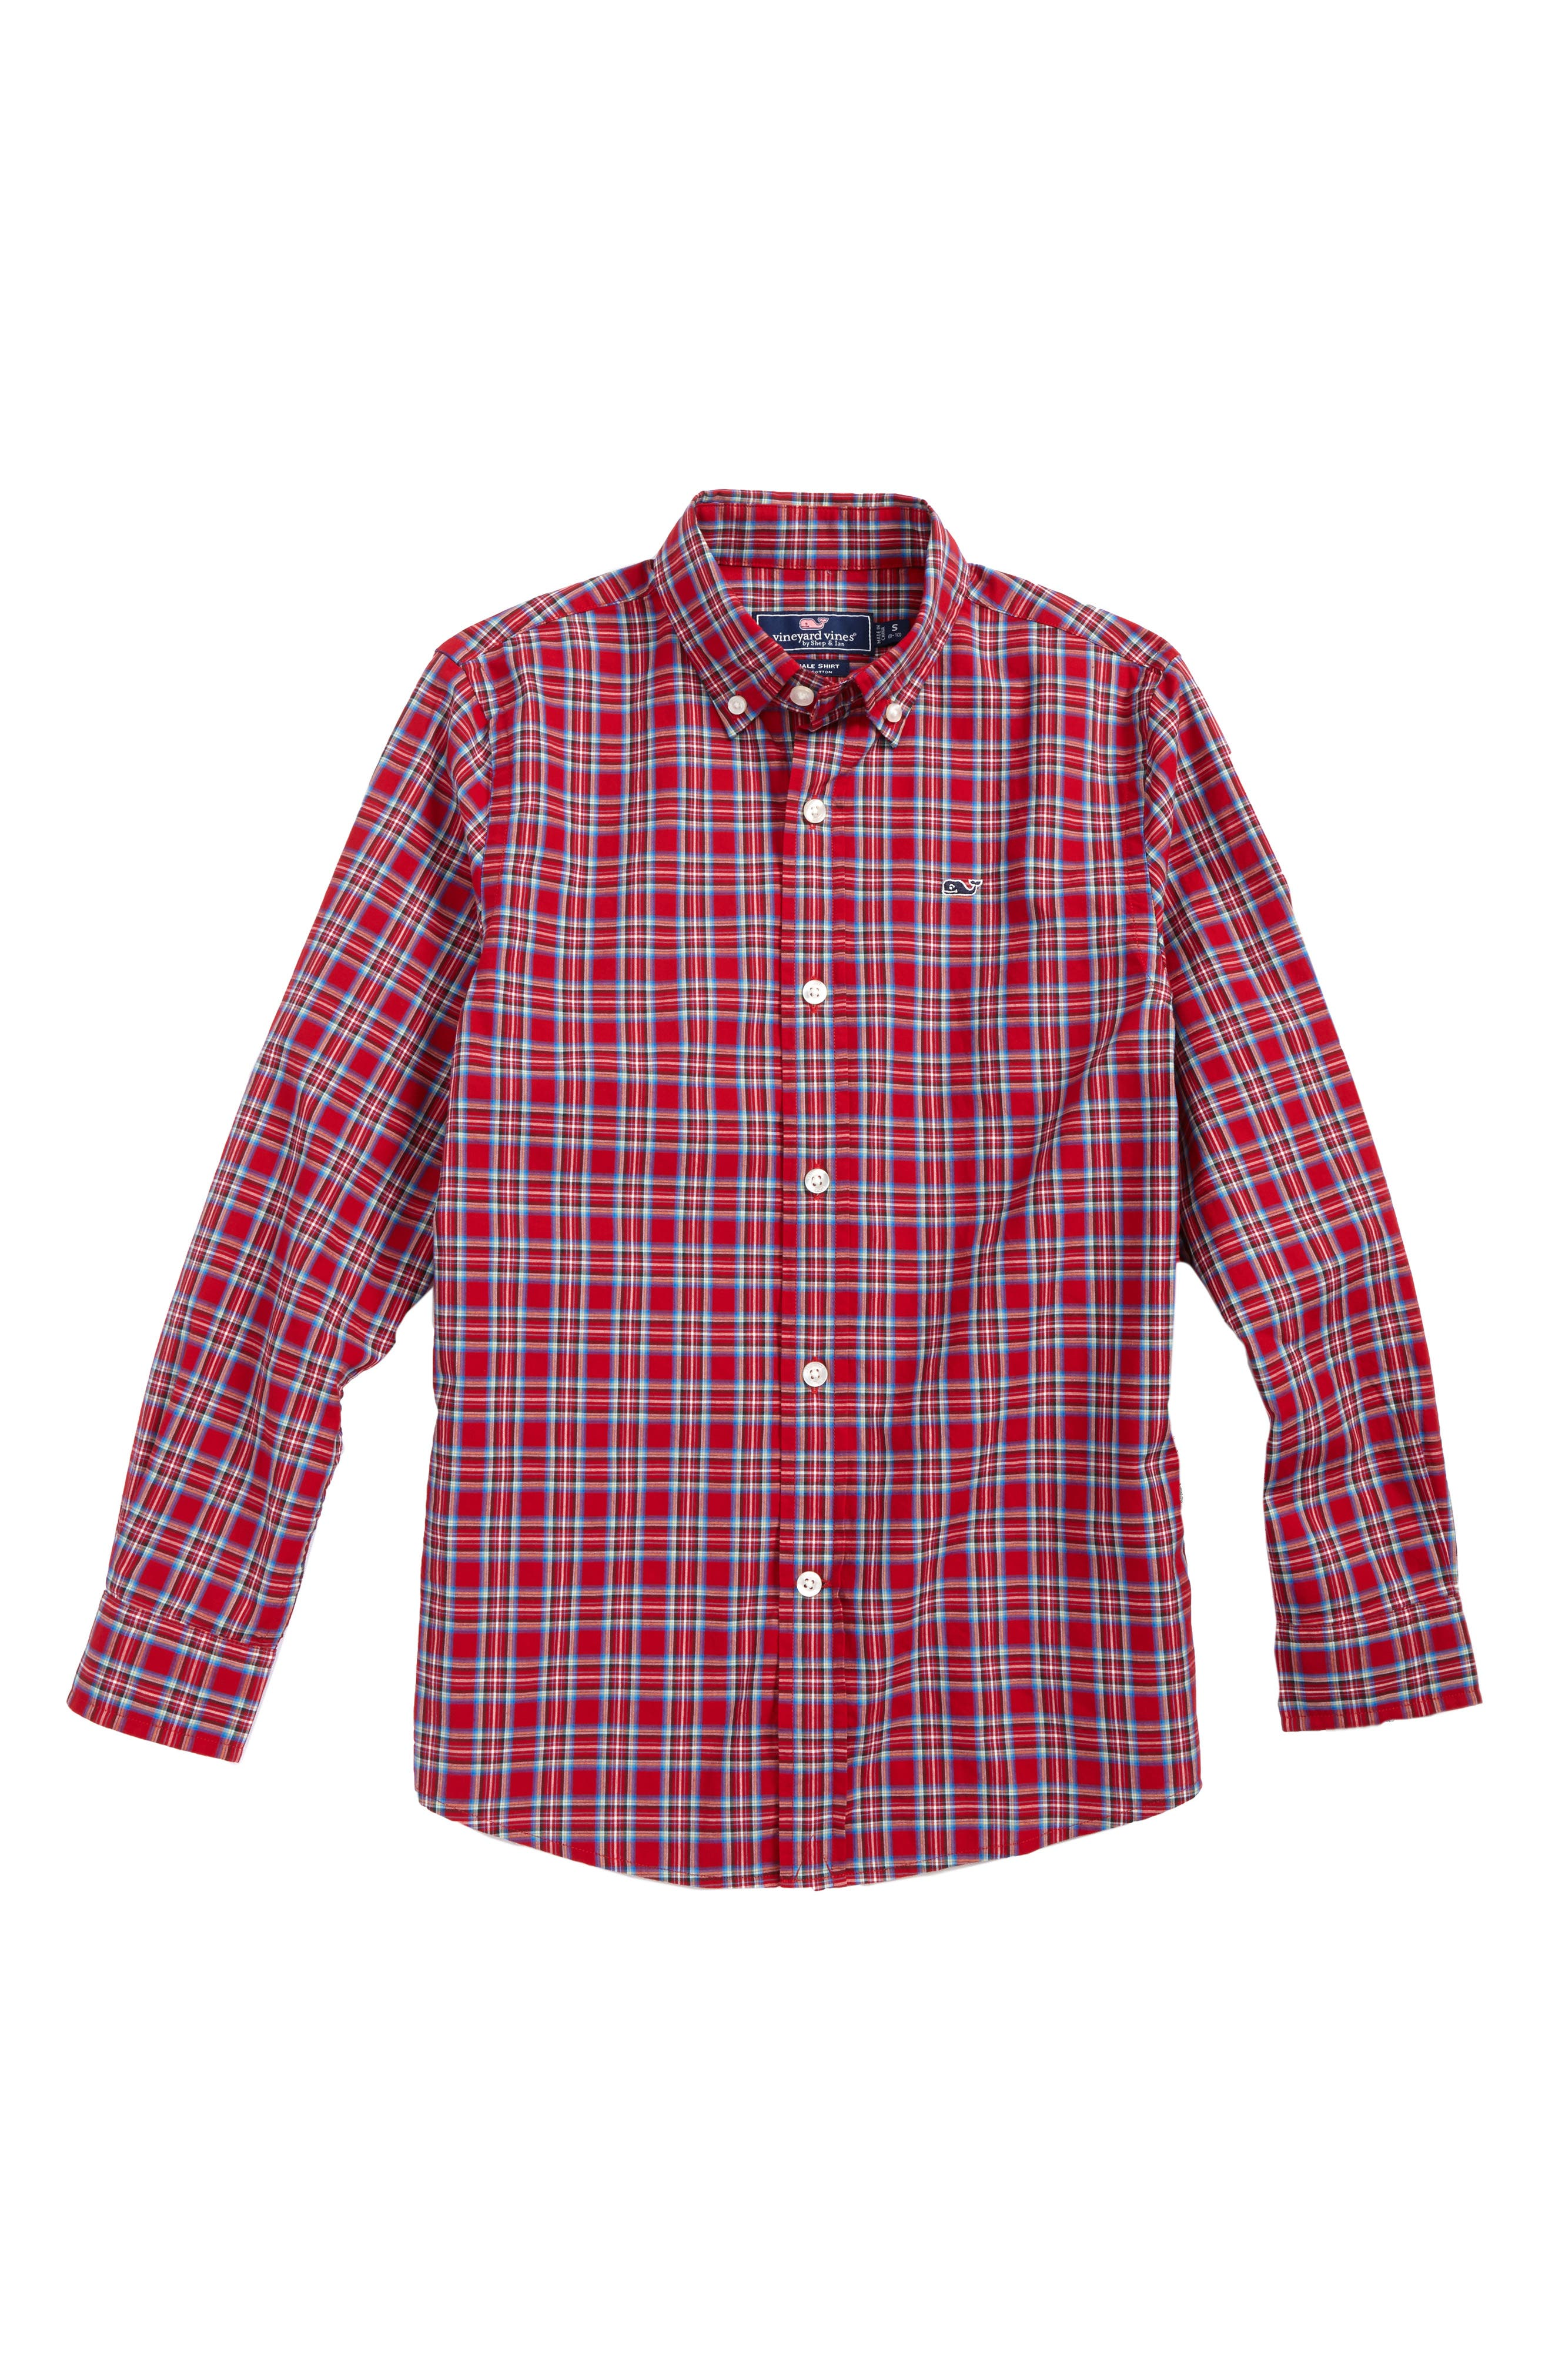 vineyard vines Riverton Plaid Whale Shirt (Big Boys)